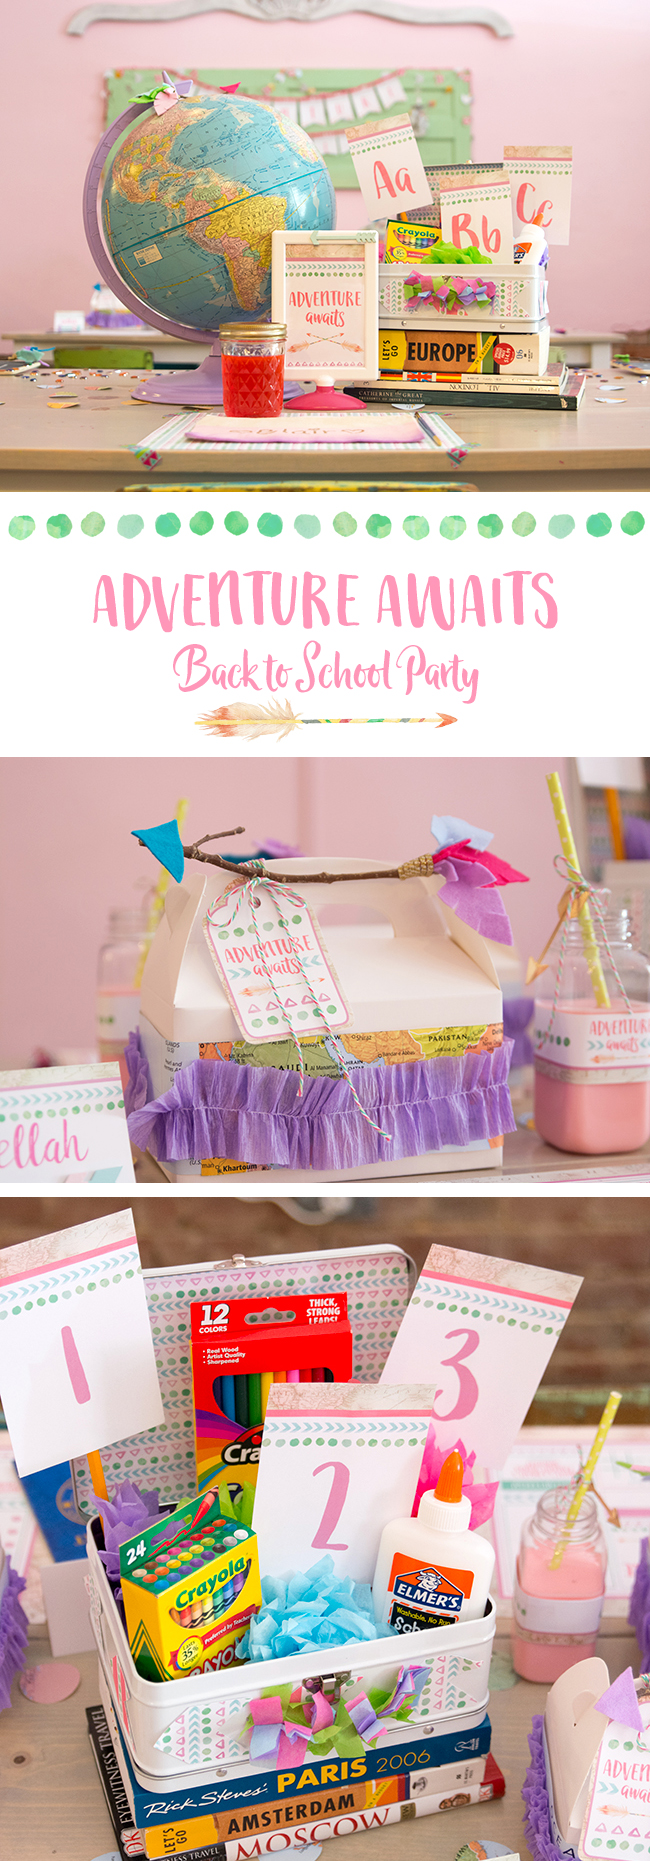 Adventure Awaits Back to School Party - Made of Sugar & Spice / Jen T by Design